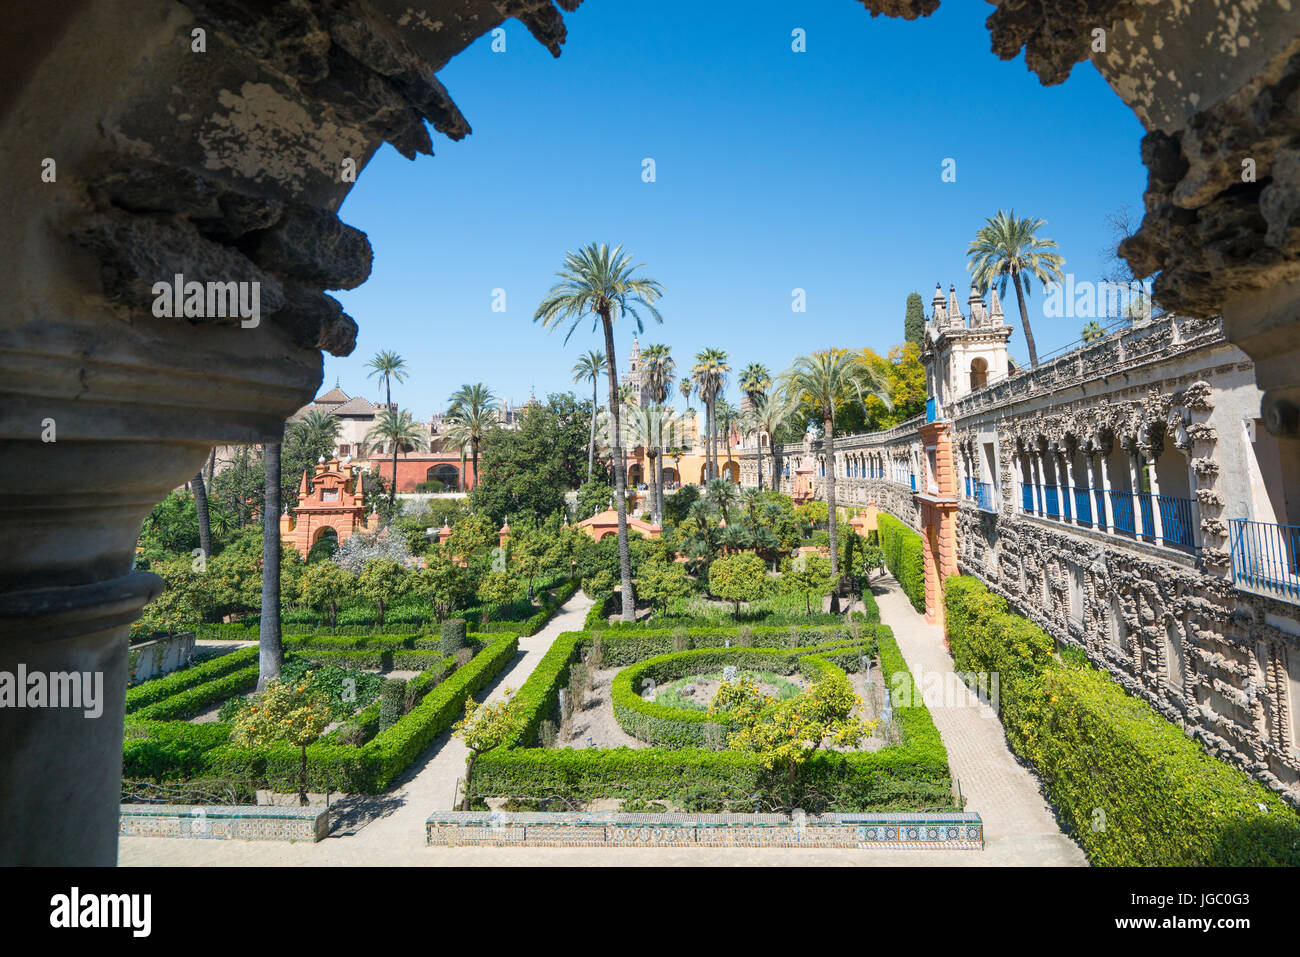 Gardens of the Alcazar, Seville, Andalucia, Spain framed by an open stone archway Stock Photo